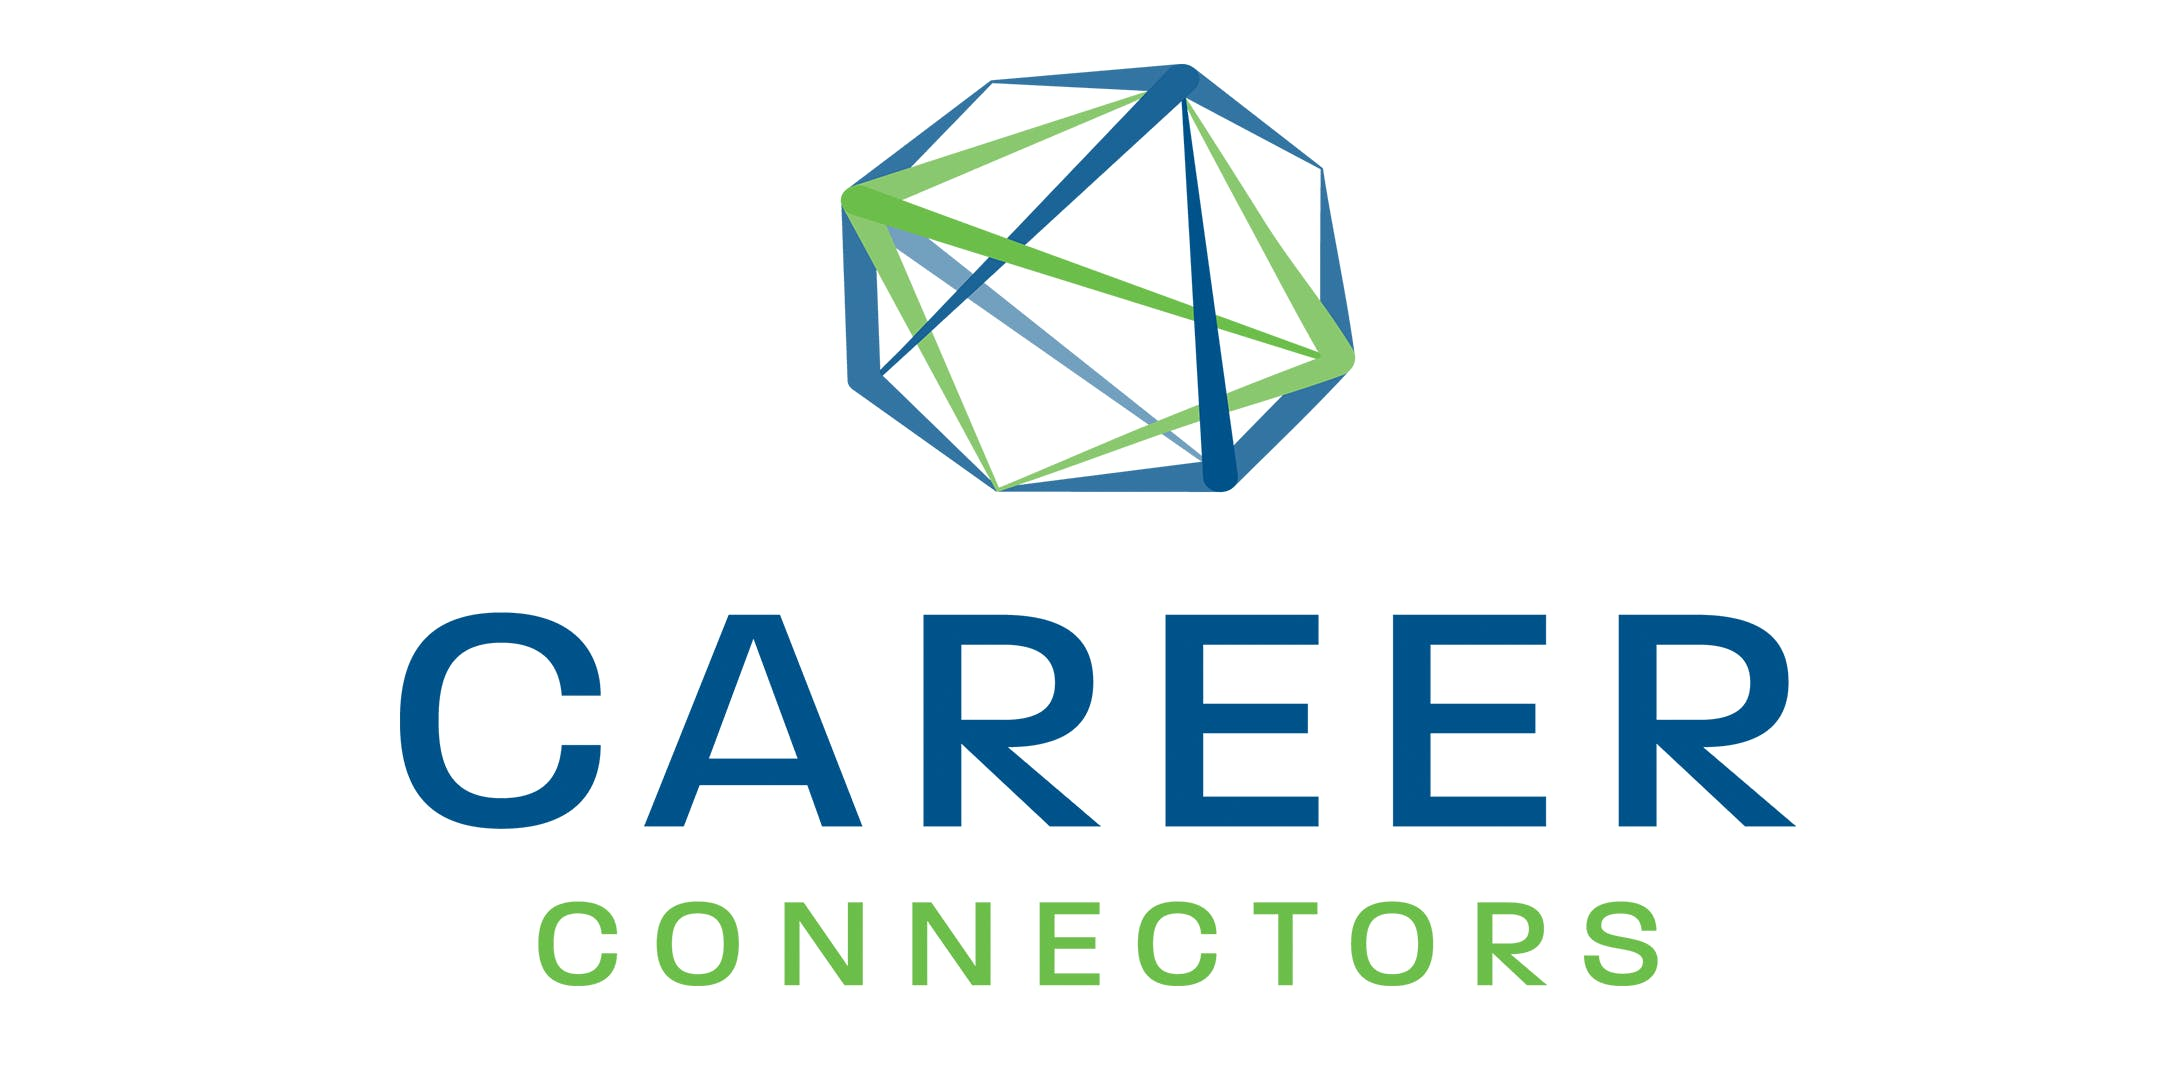 Phoenix - Career Advancement in the Culture of Contact Centers | Panel: State Farm, Freedom Financial Network, USAA, AMEX, Vanguard, Charles Schwab